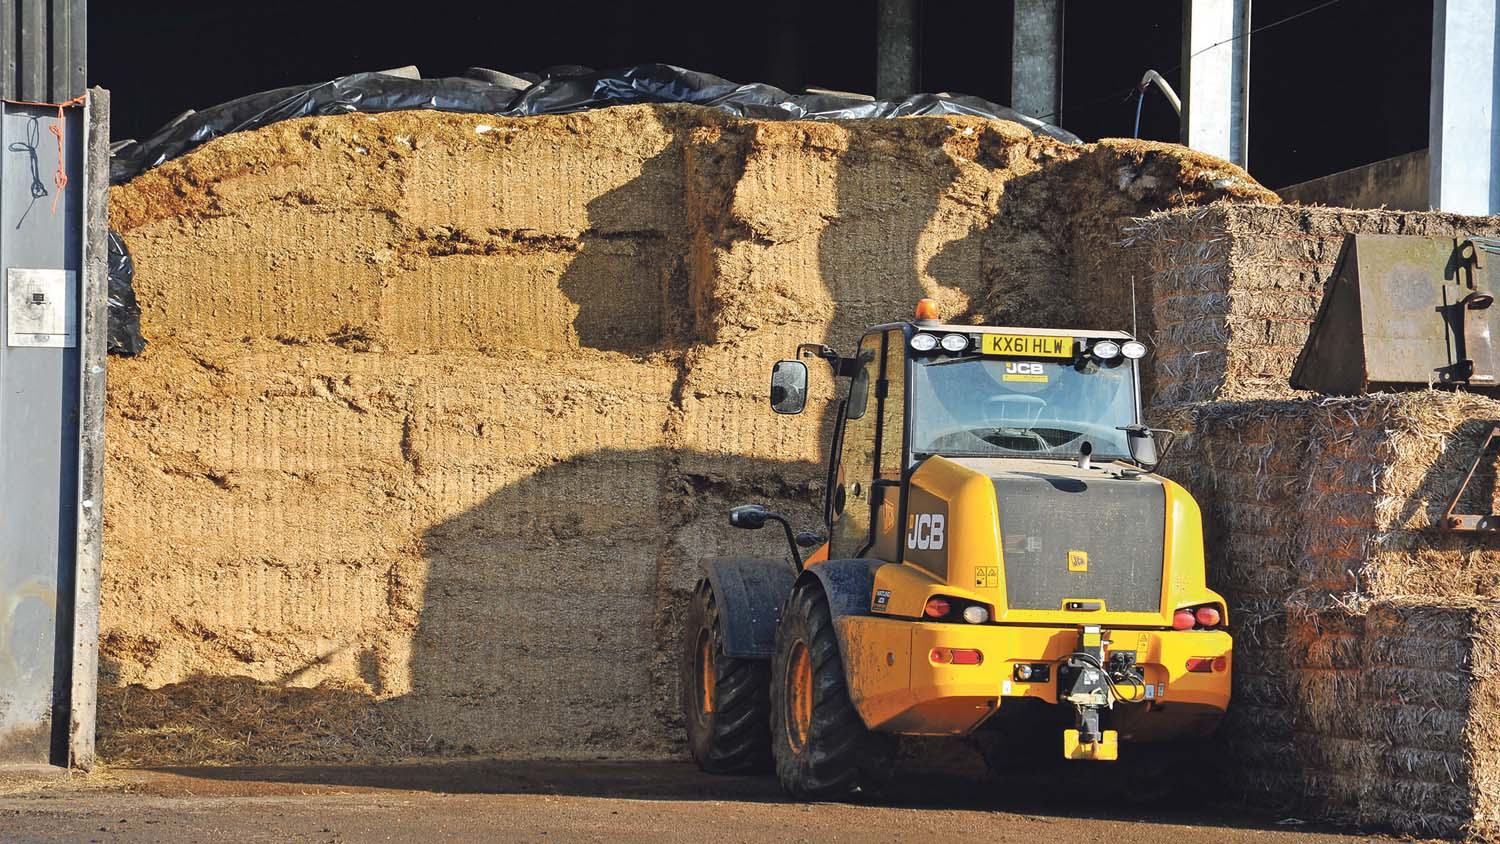 Falling farm income highlights impact of volatility